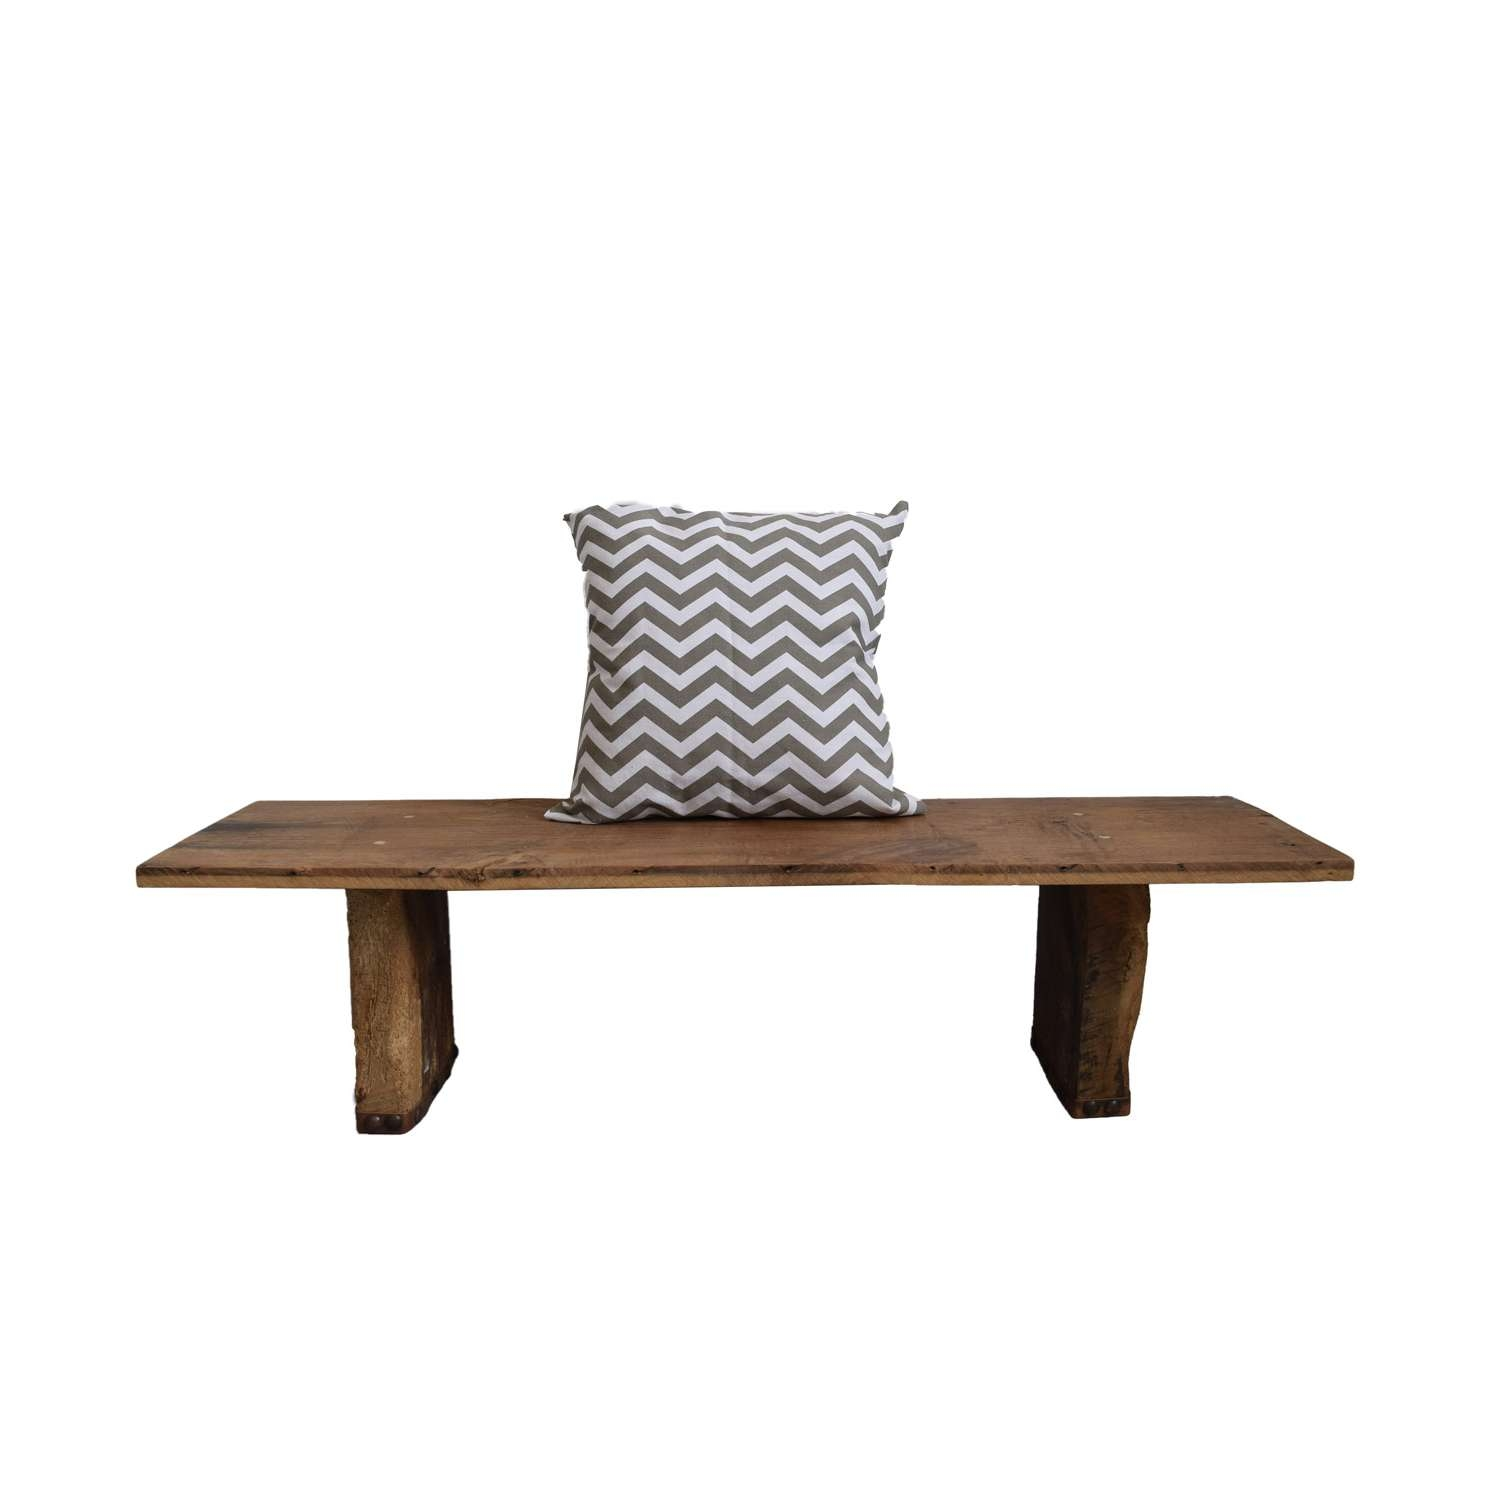 Current Handmade Wooden Coffee Tables Throughout Handmade Reclaimed Wood Bench Coffee Table – All Things Cornish (View 20 of 20)